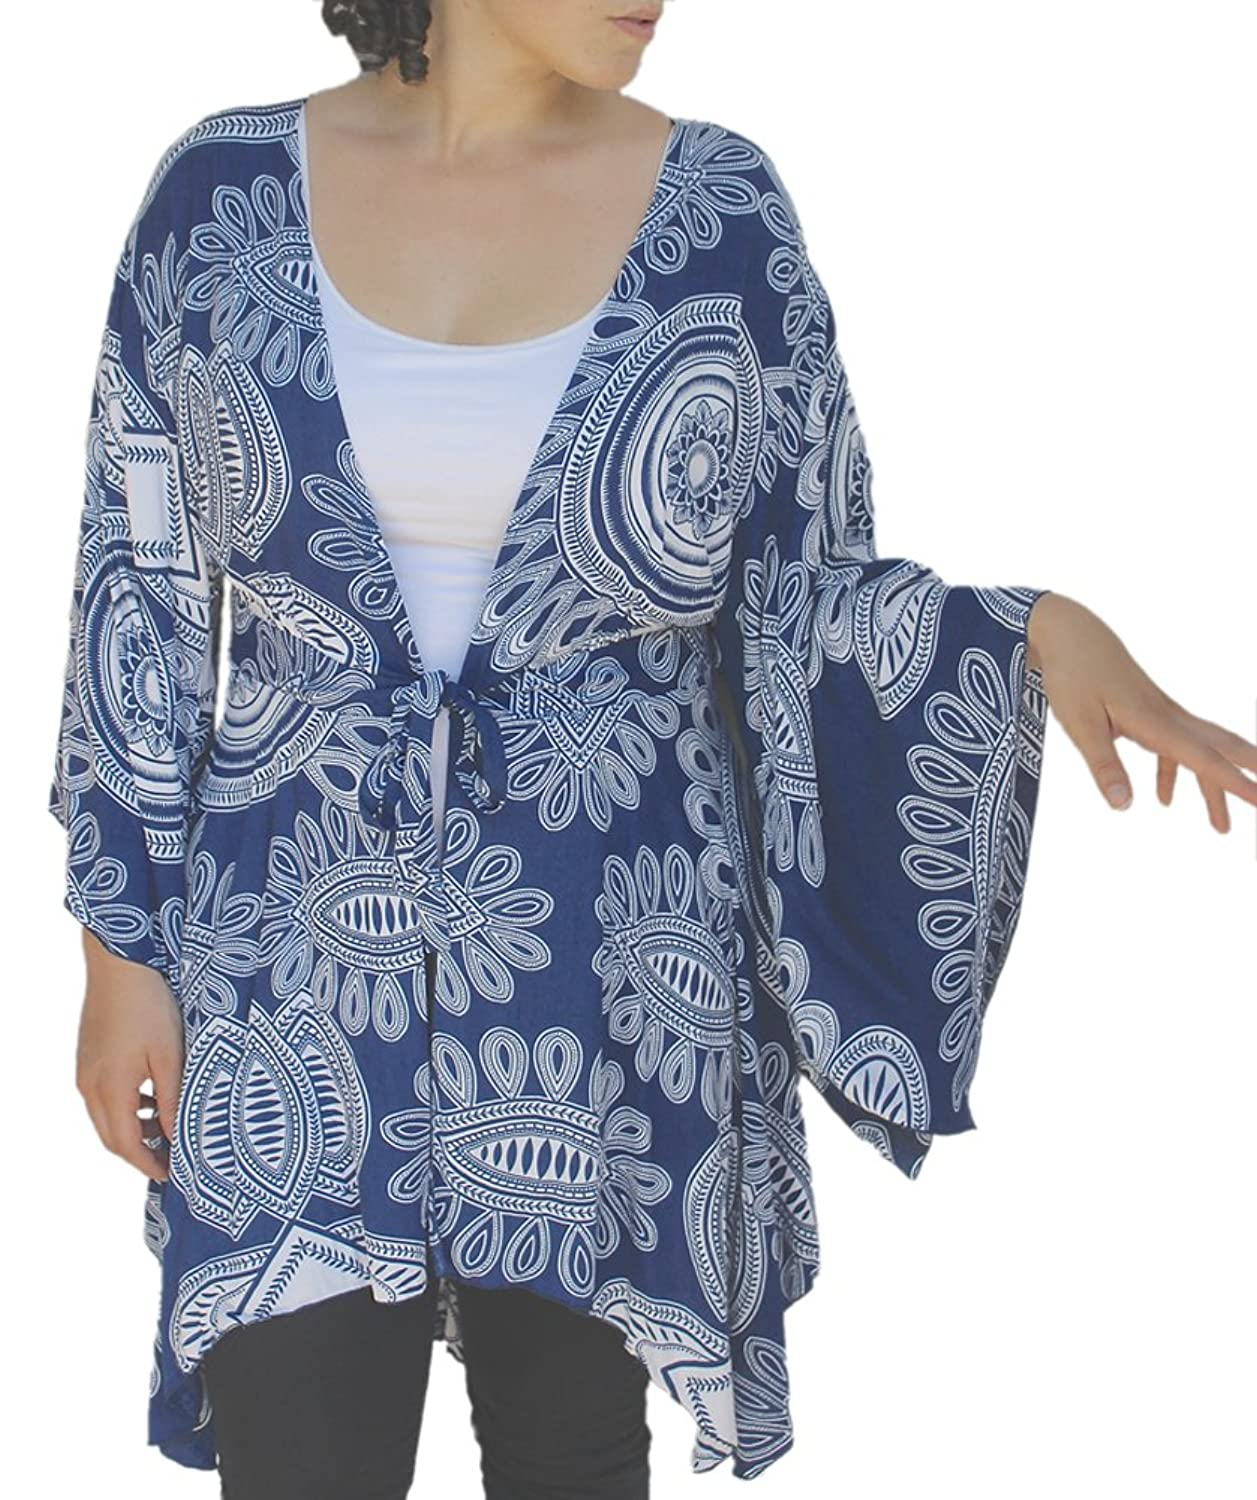 Plus Size Tunic Cardigan, Kimono Sleeve Style, Womens Plus Sizes, Bust up to 58""